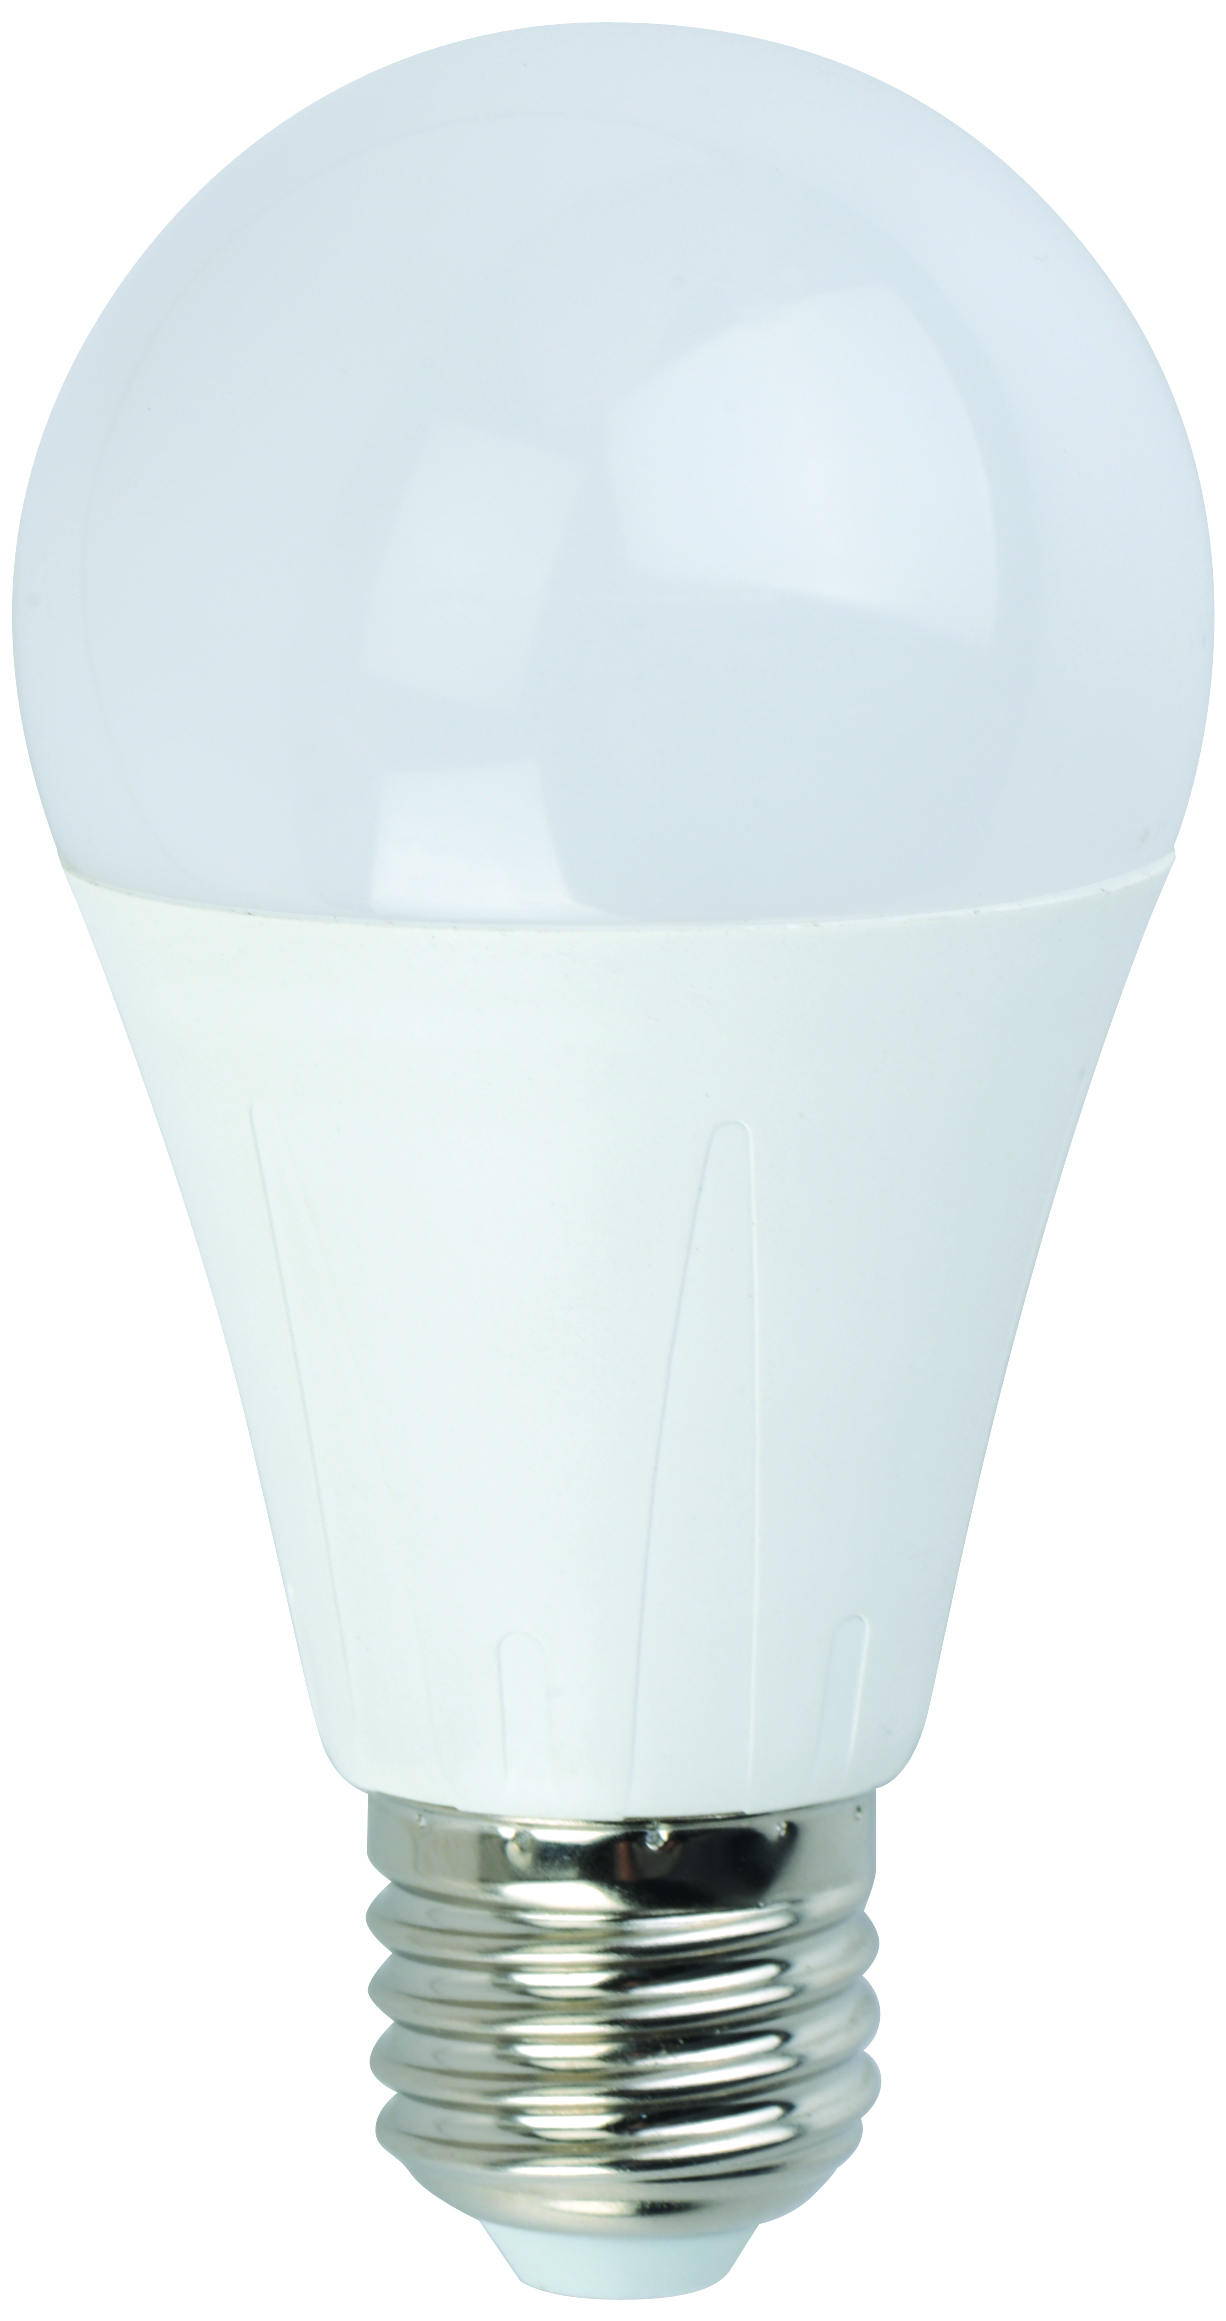 High Quality TUV-GS CE ROHS Passed B60AP LED Bulb 7W 560lm E27